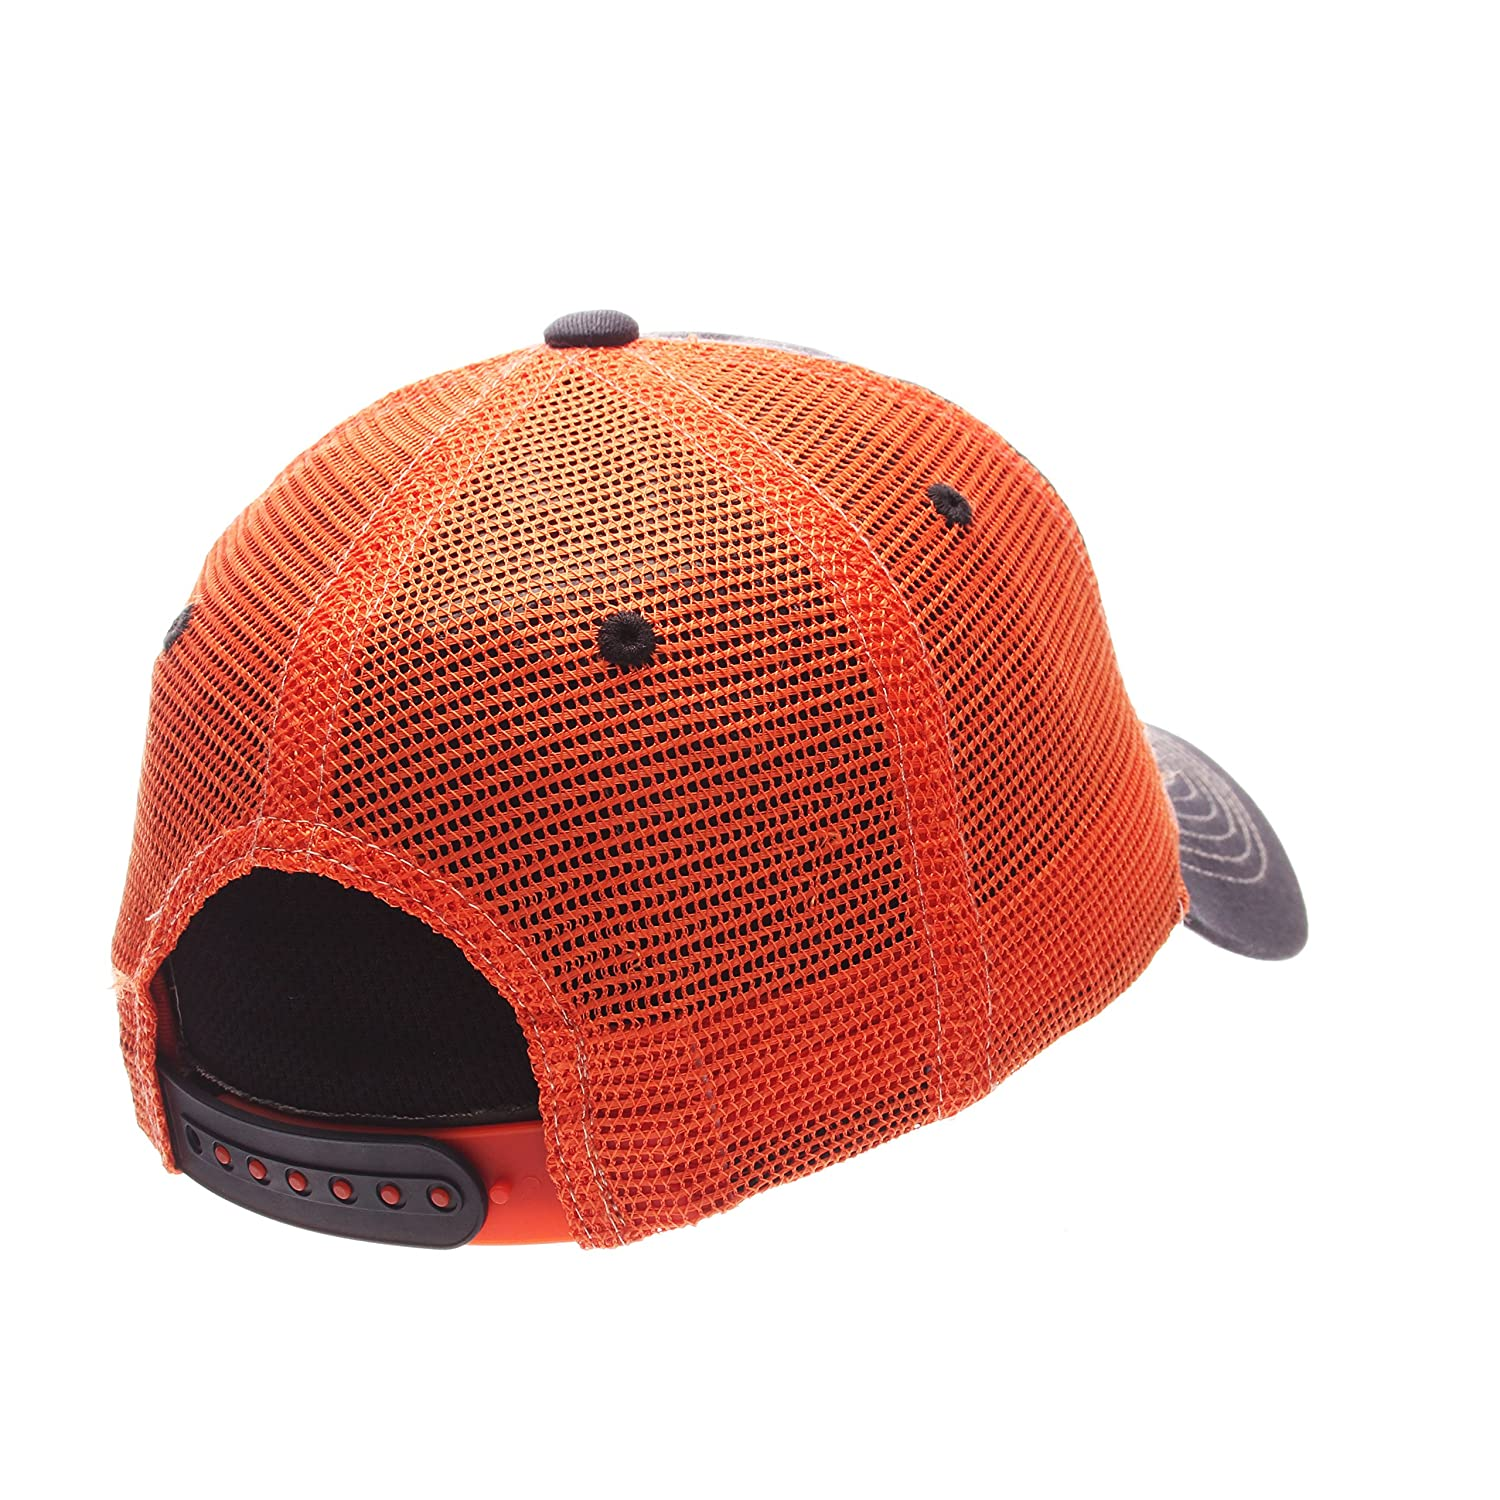 Zephyr Route Relaxed Cap